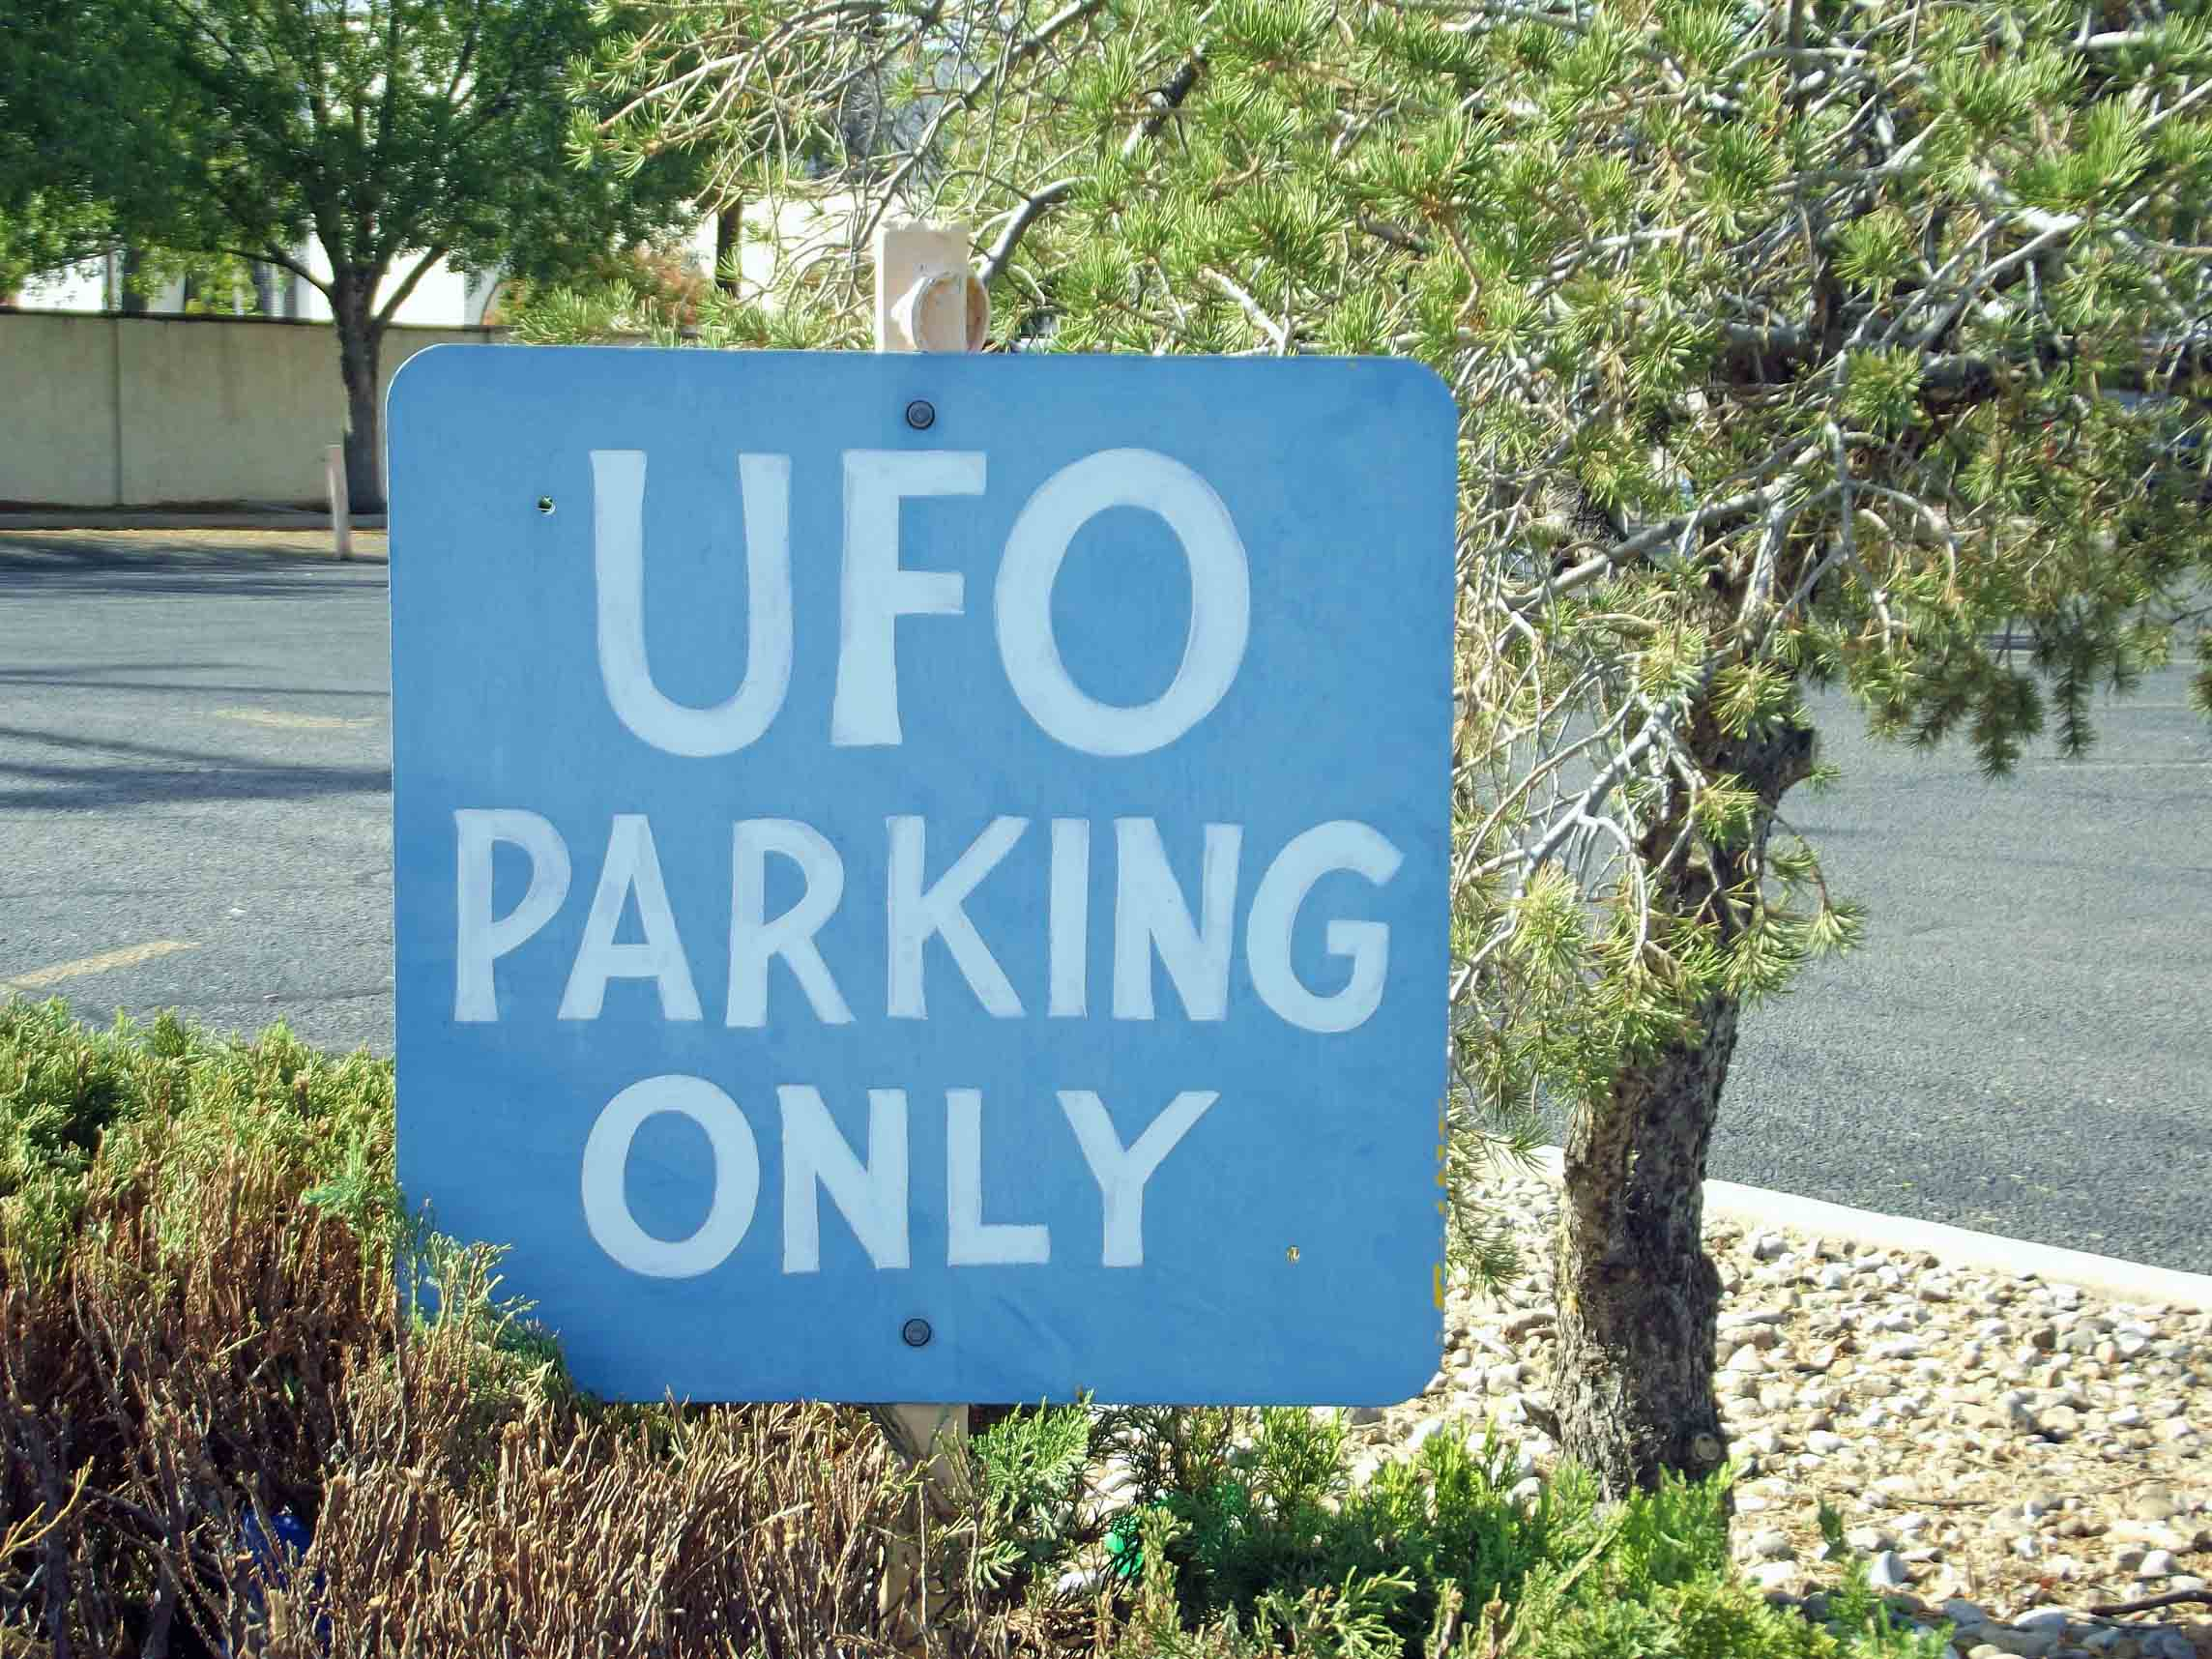 Sign saying UFO parking only